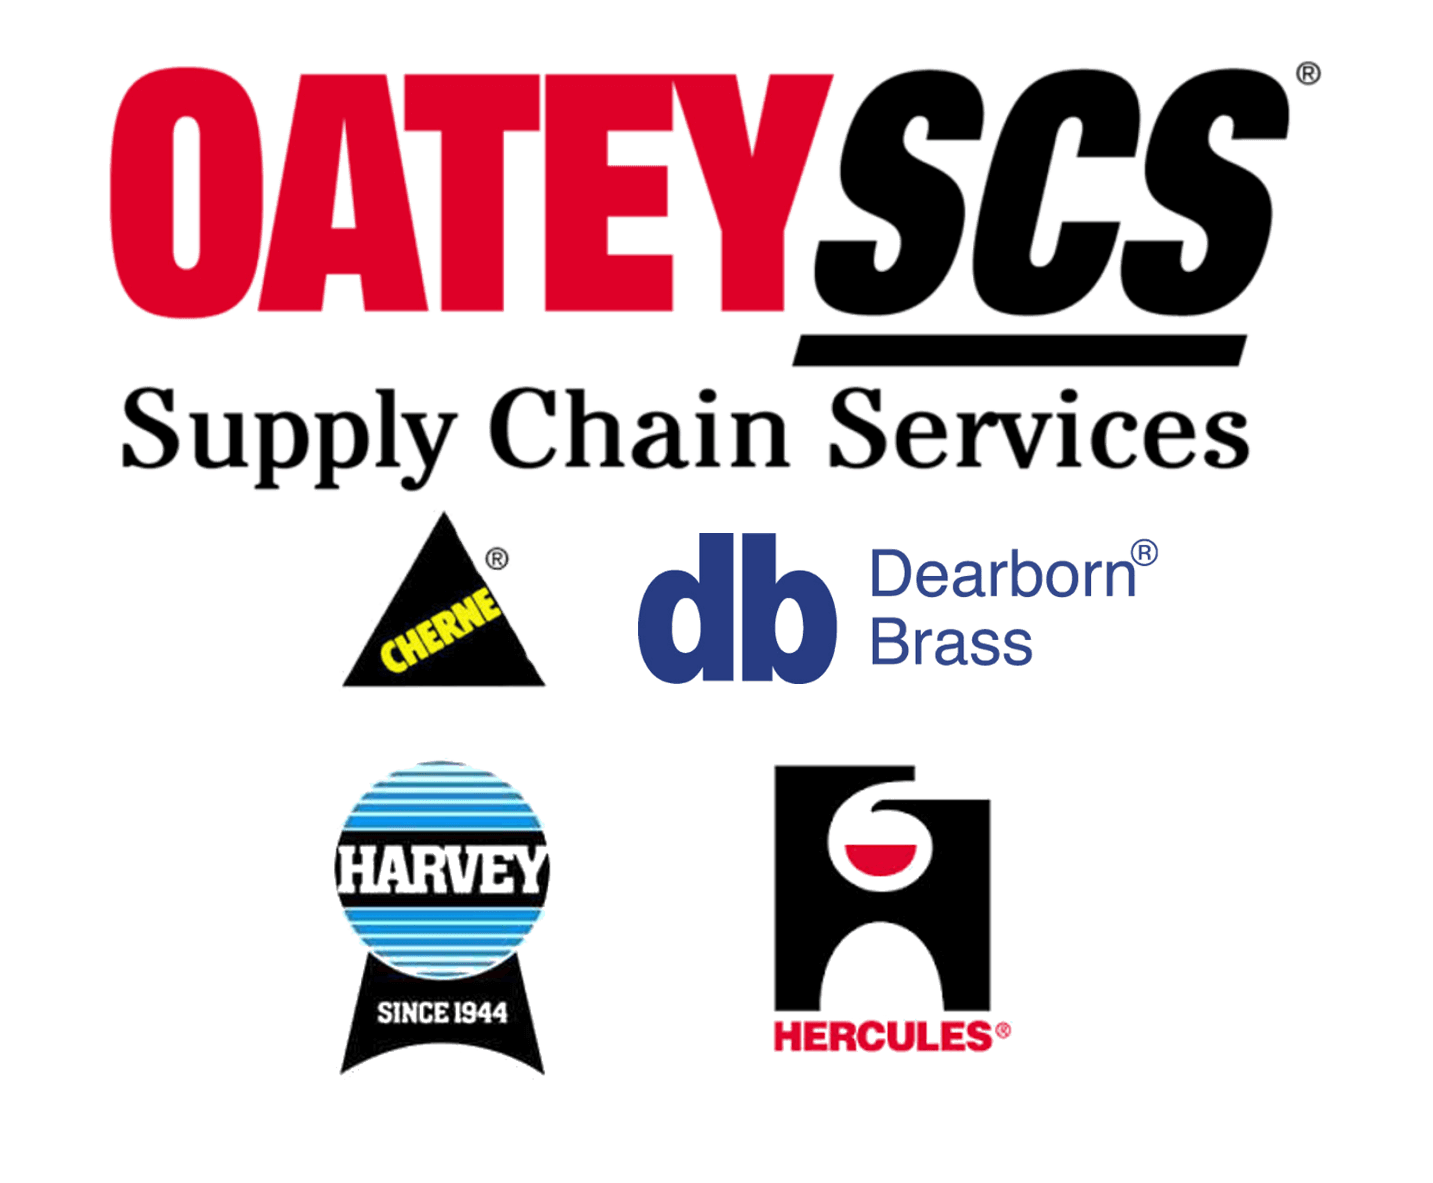 OateySCS with Cherne, Harvey, Dearborn Brass, and Hercules logos